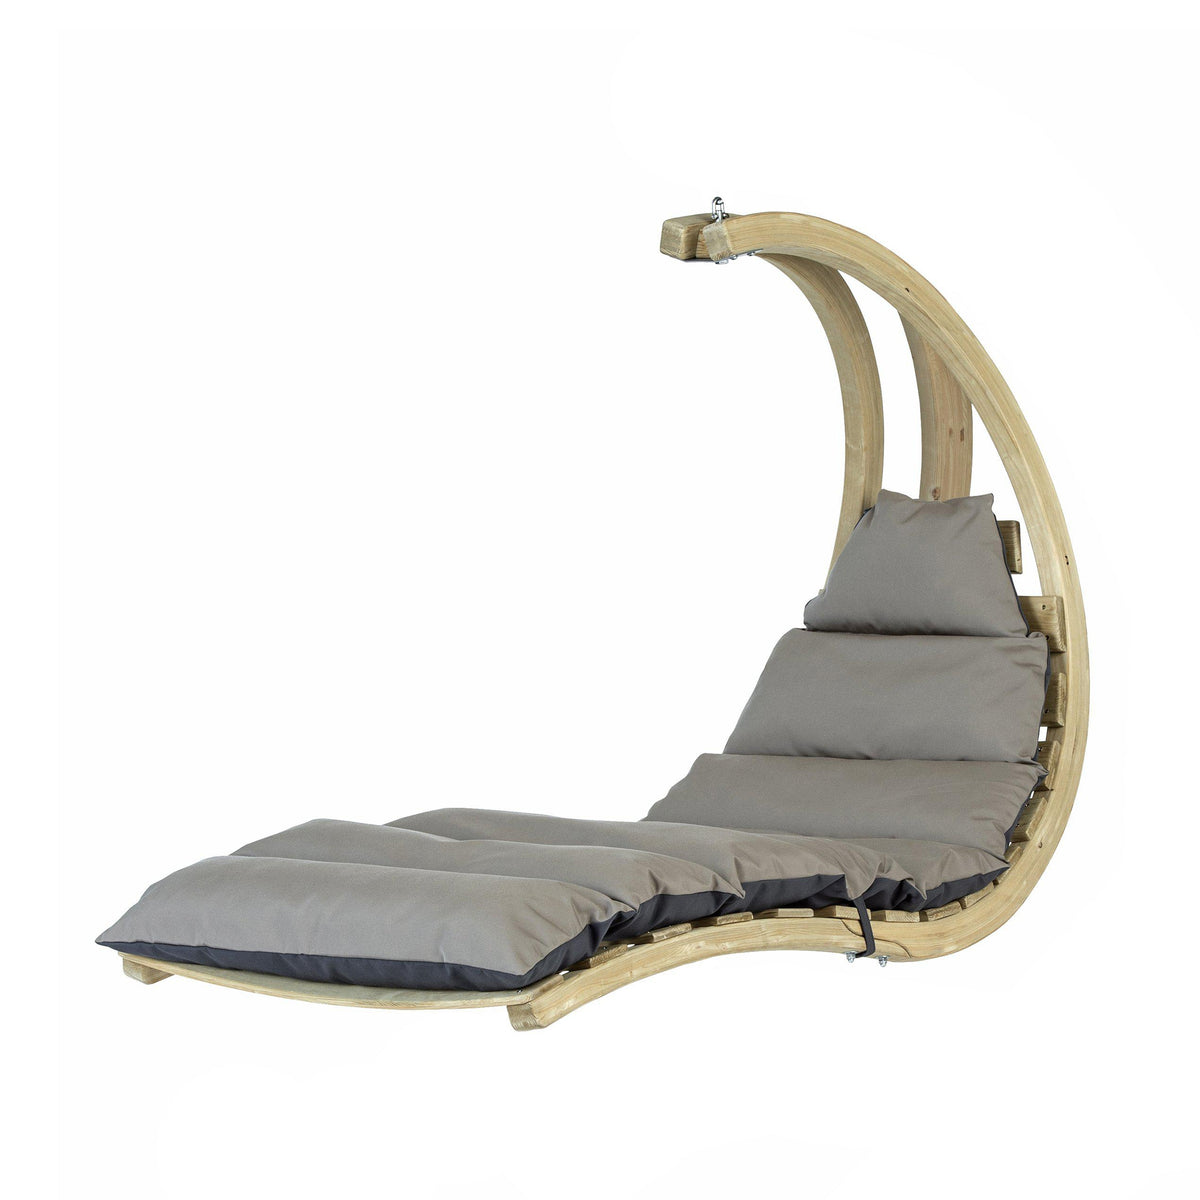 Swing Lounger, Anthracite/Taupe, from Byer of Maine